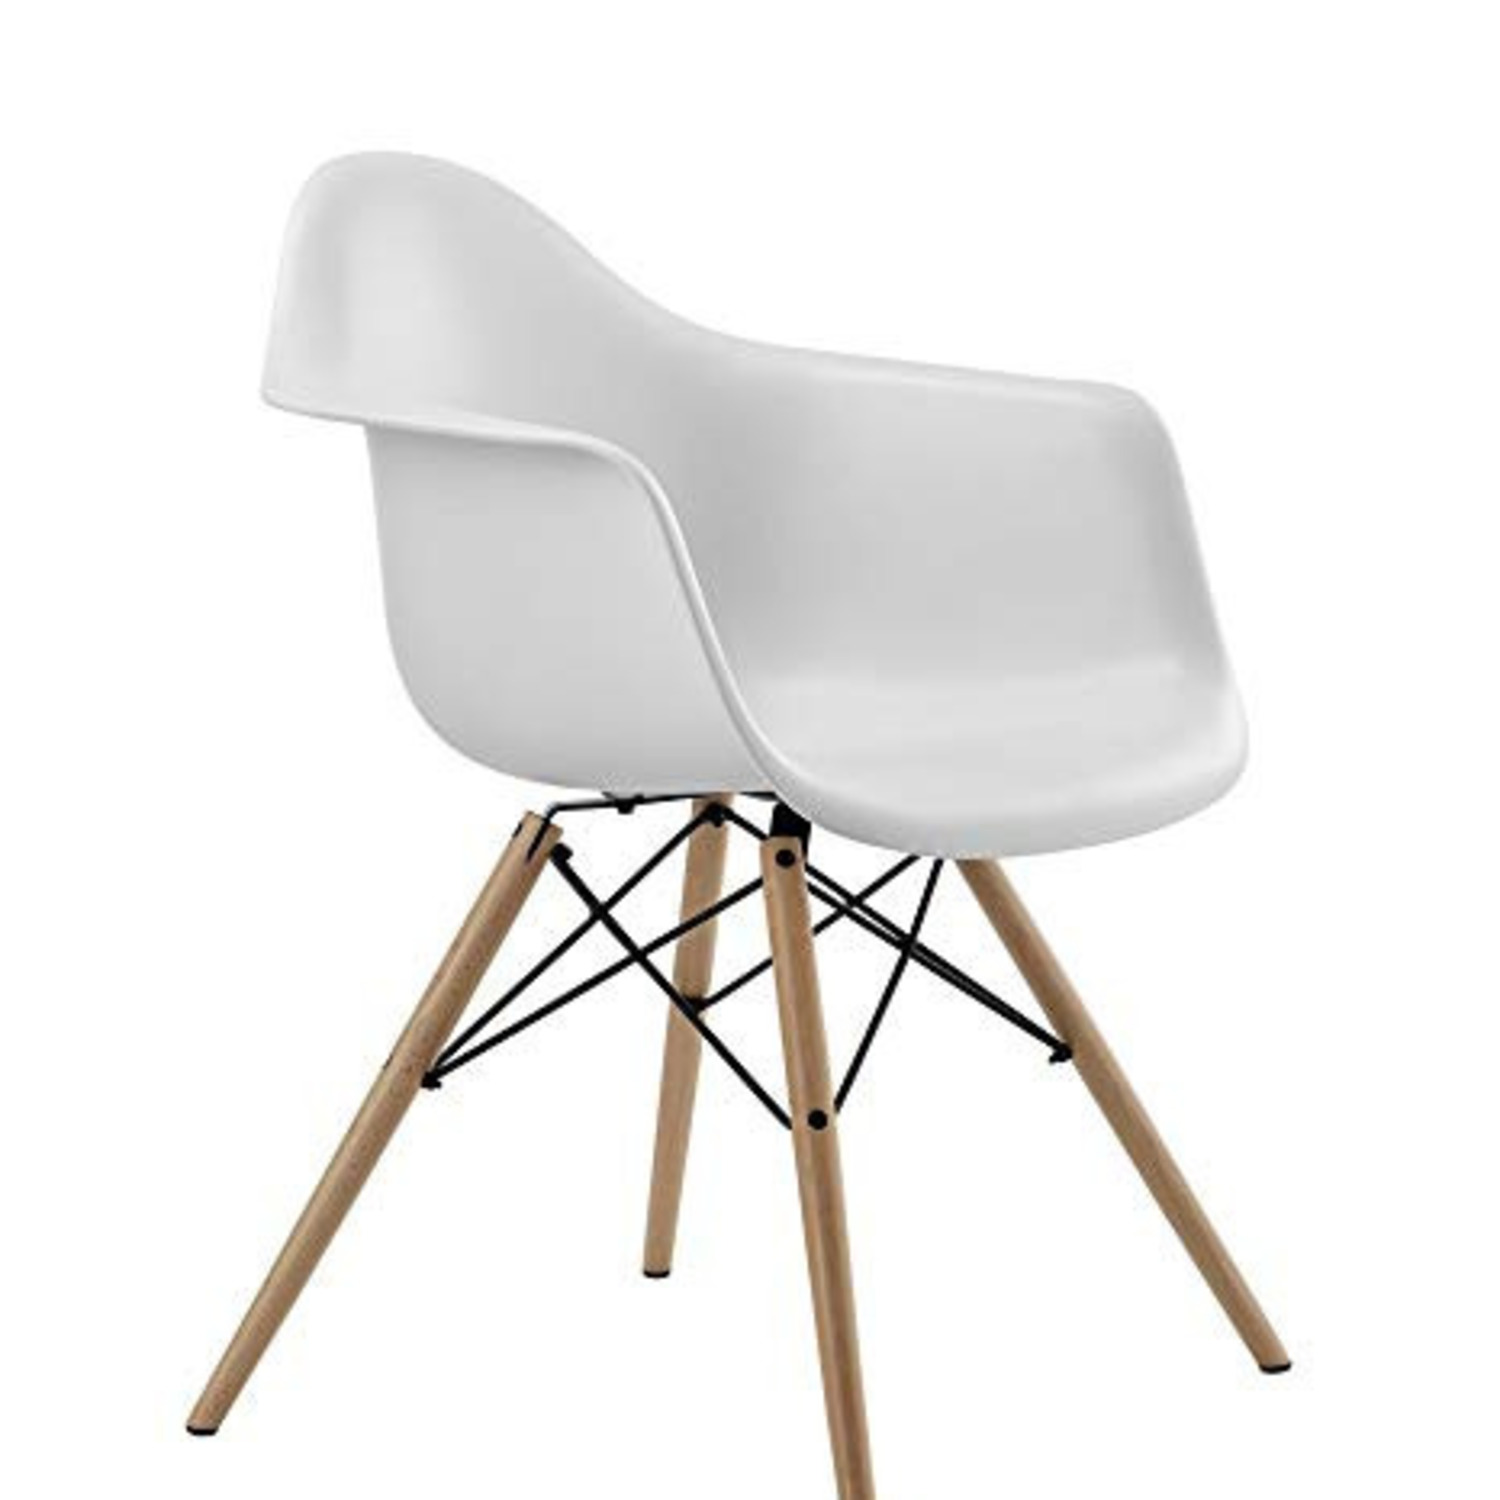 DHP Furniture Mid Century Modern Chair (Set of 2) - image-1